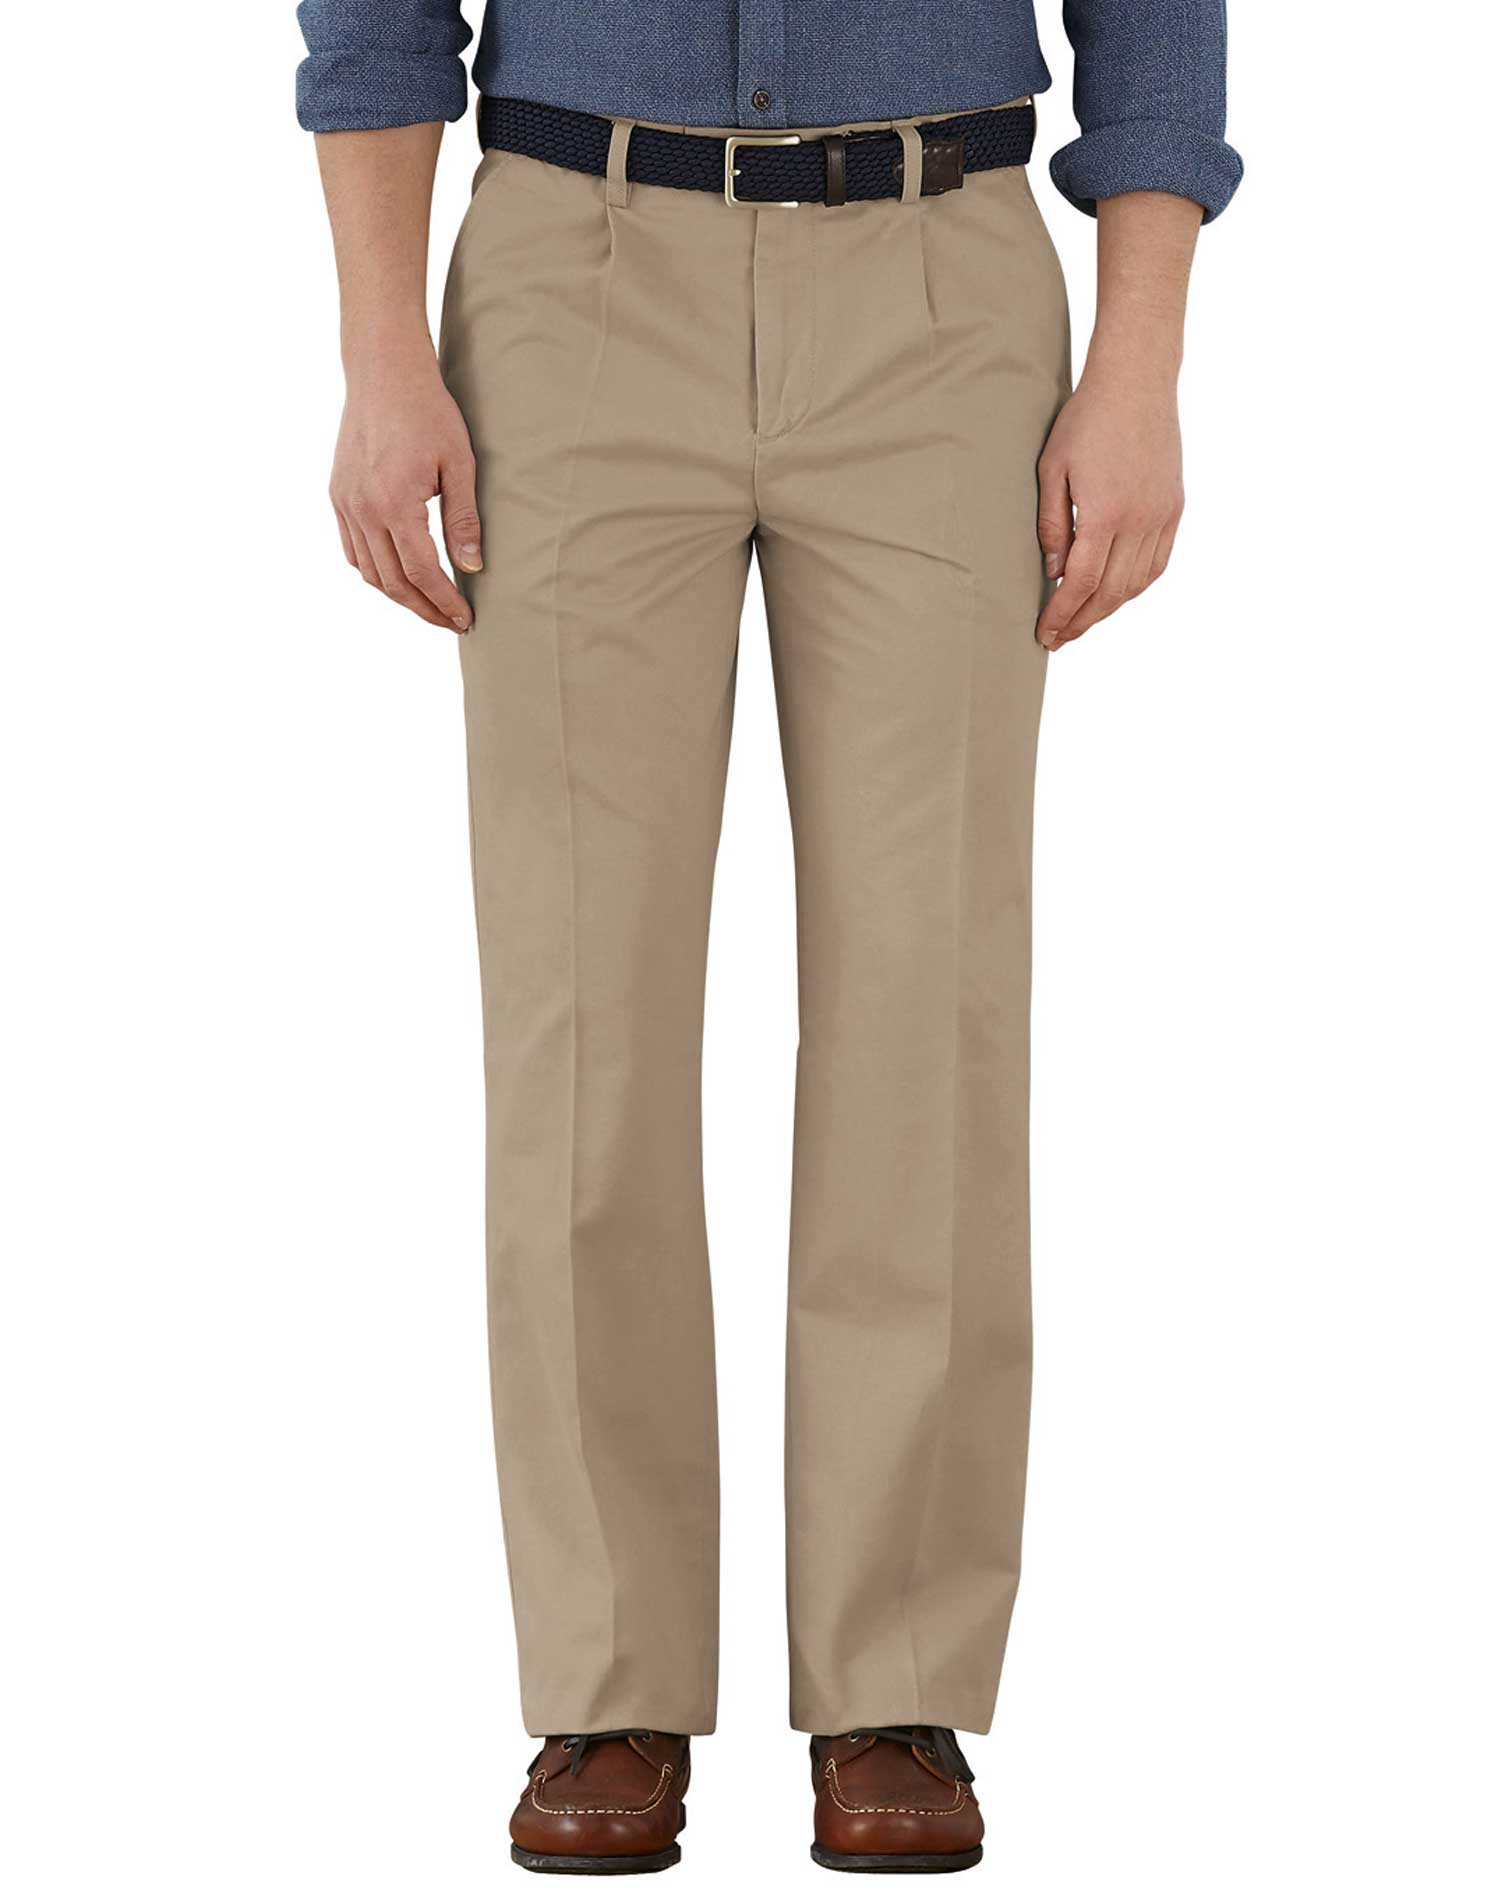 Stone Classic Fit Single Pleat Weekend Cotton Chino Trousers Size W36 L34 by Charles Tyrwhitt